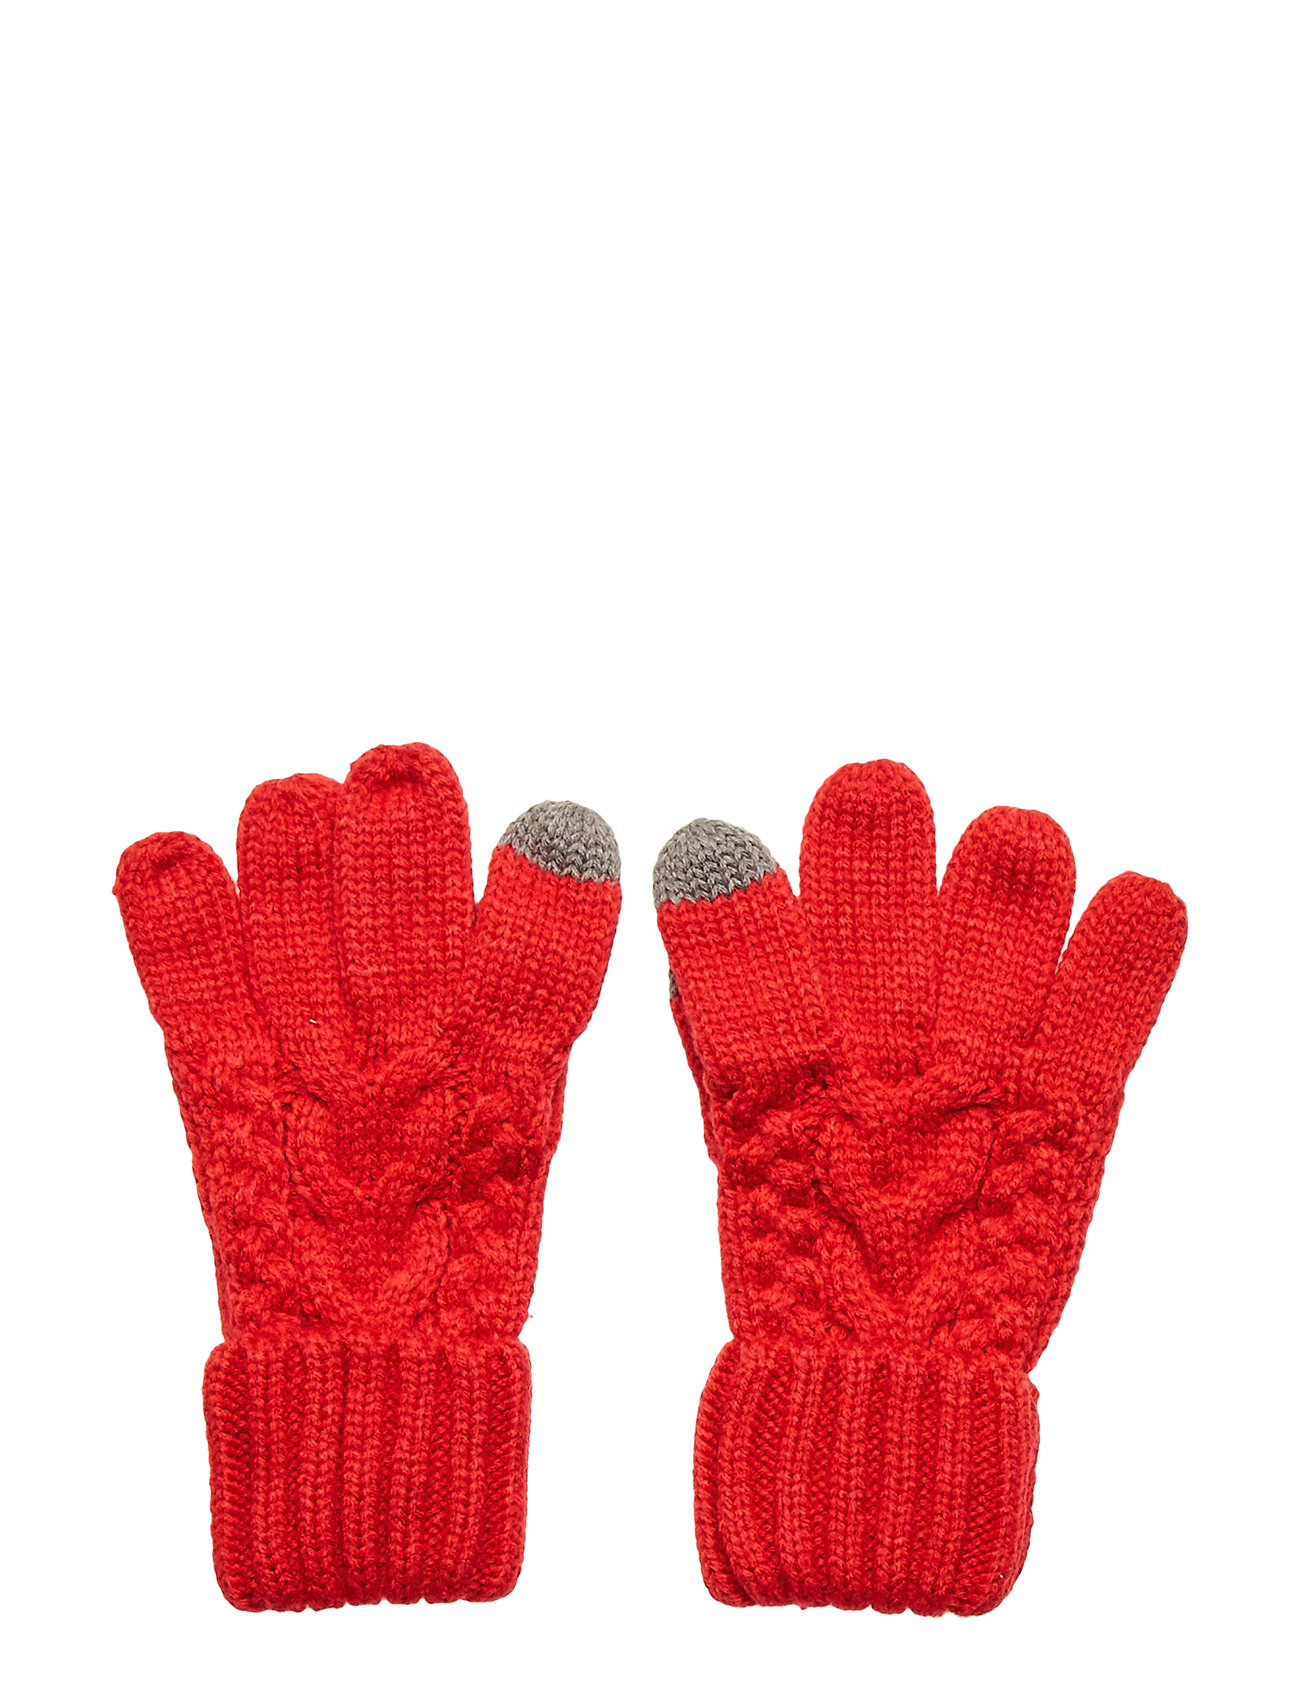 GAP Kids Cable-Knit Smartphone Gloves - MODERN RED 2